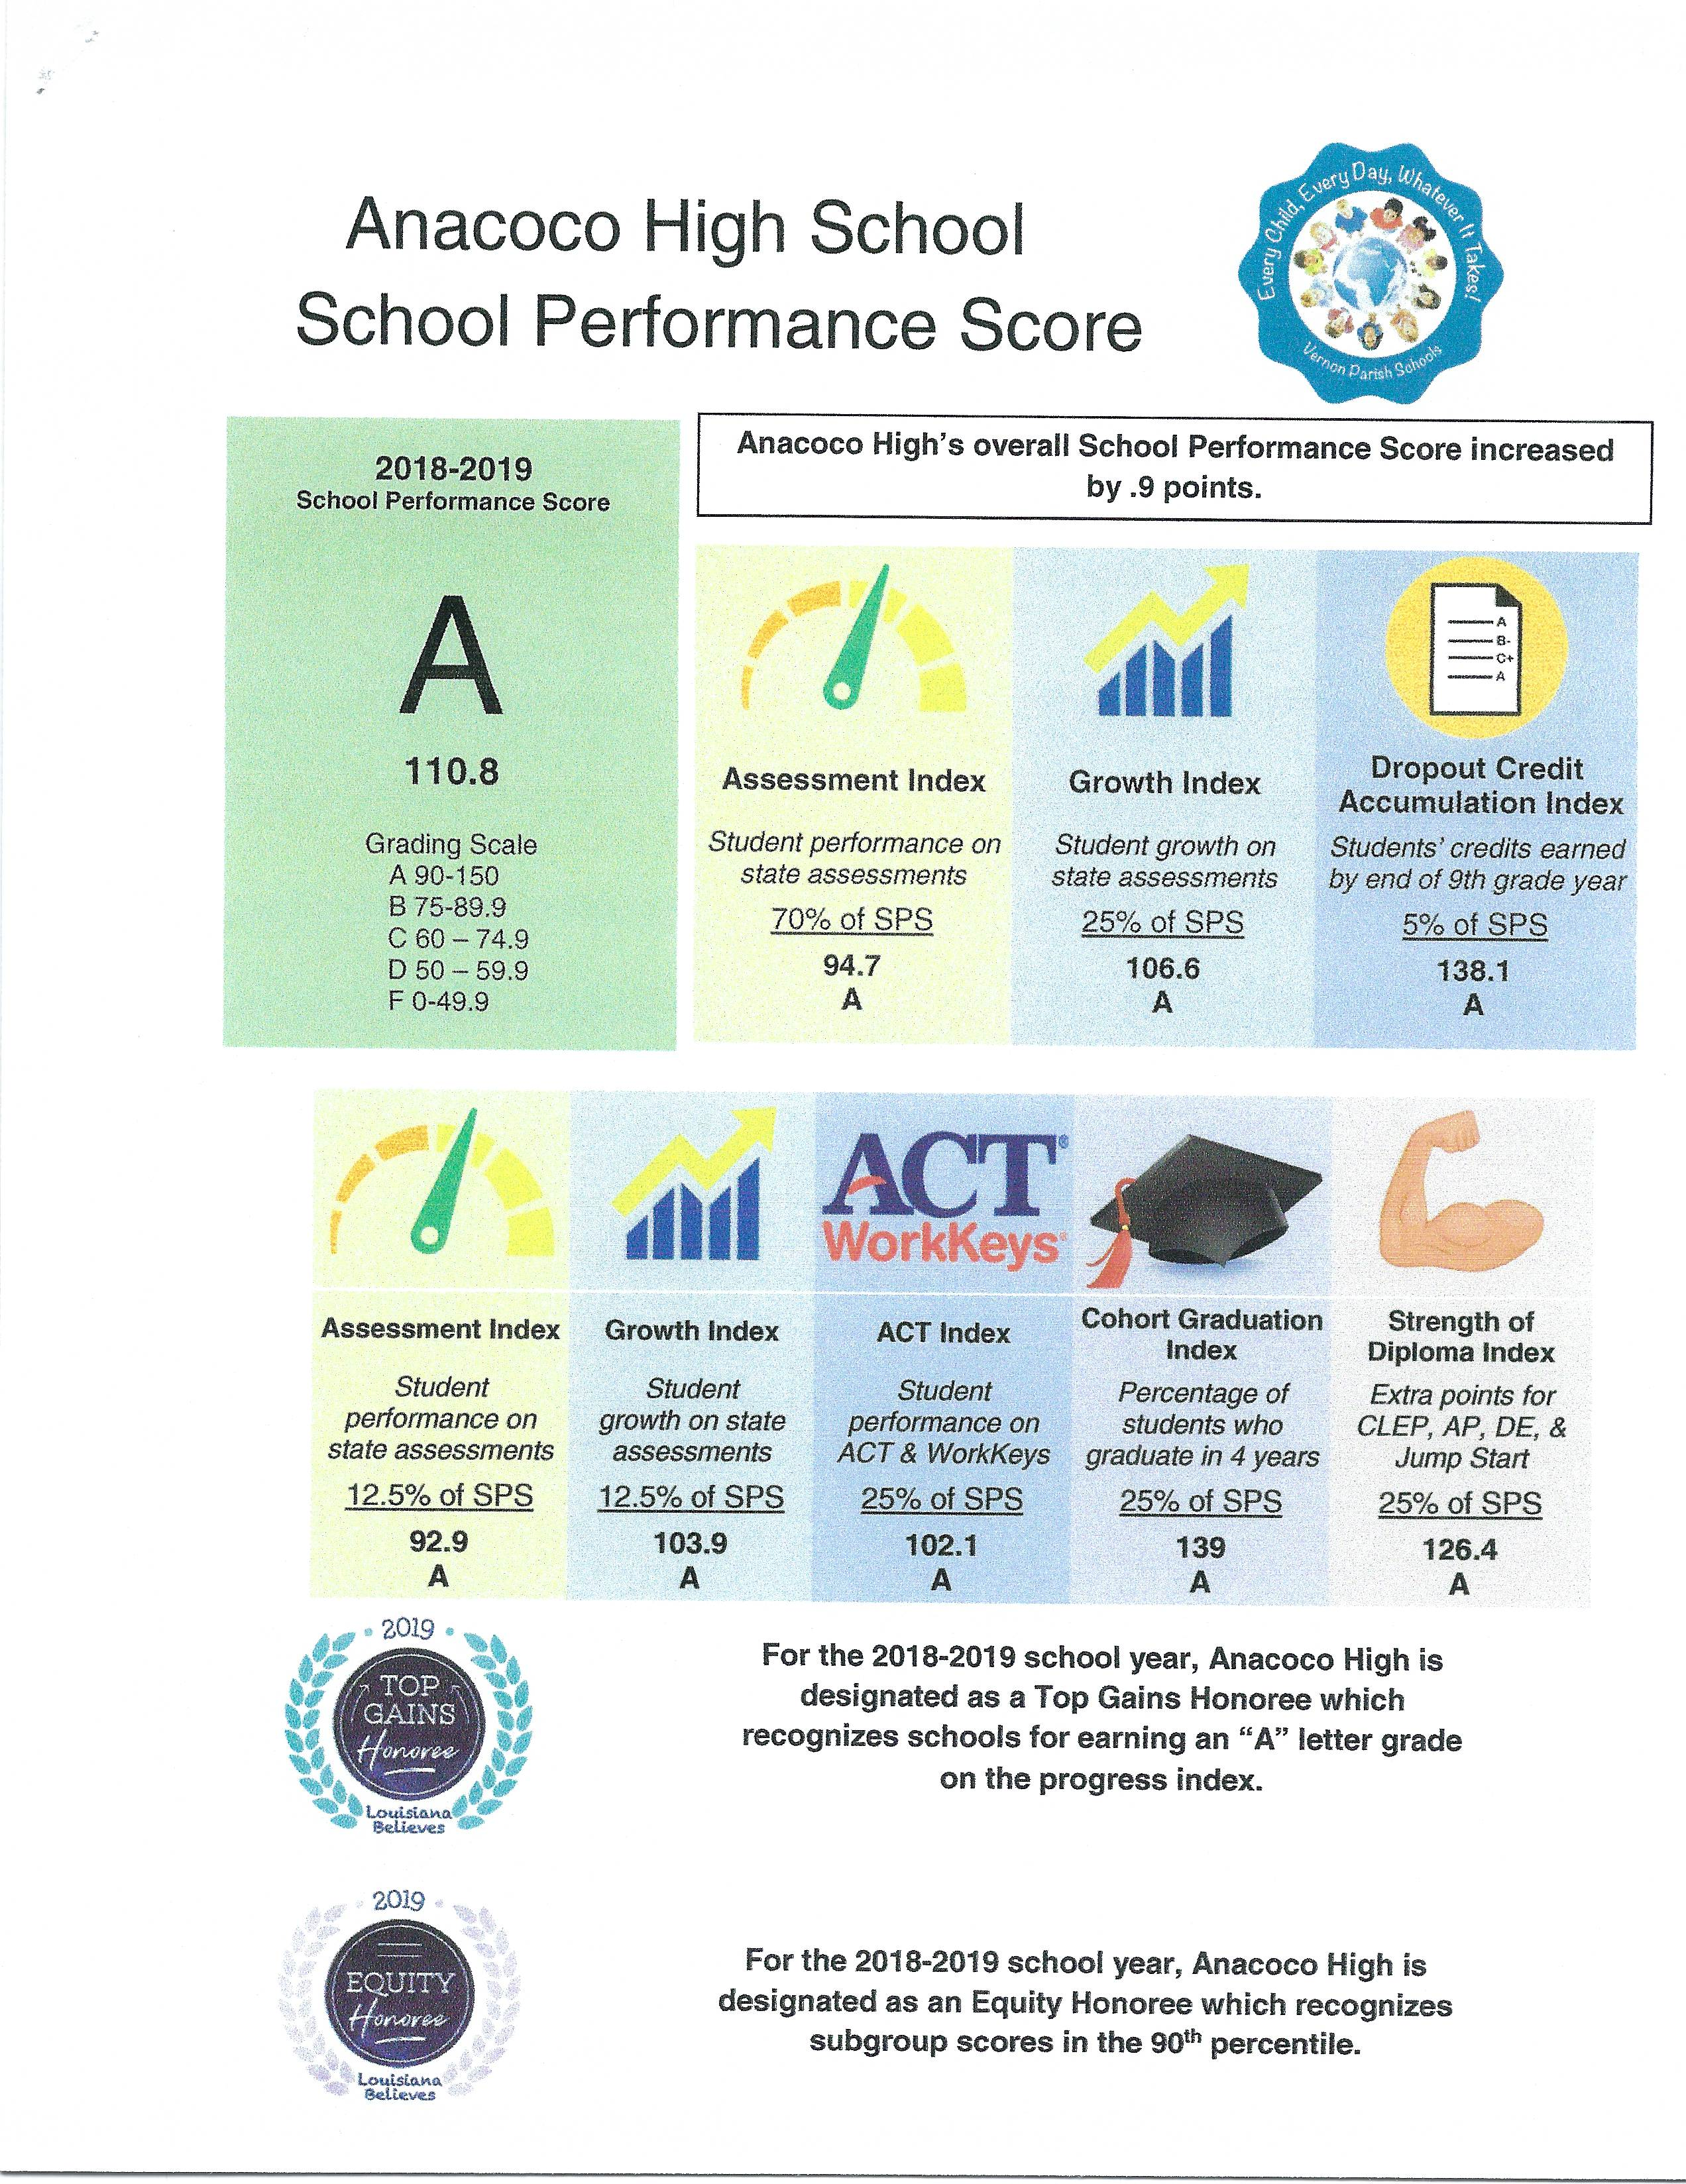 AHS School Performance Score